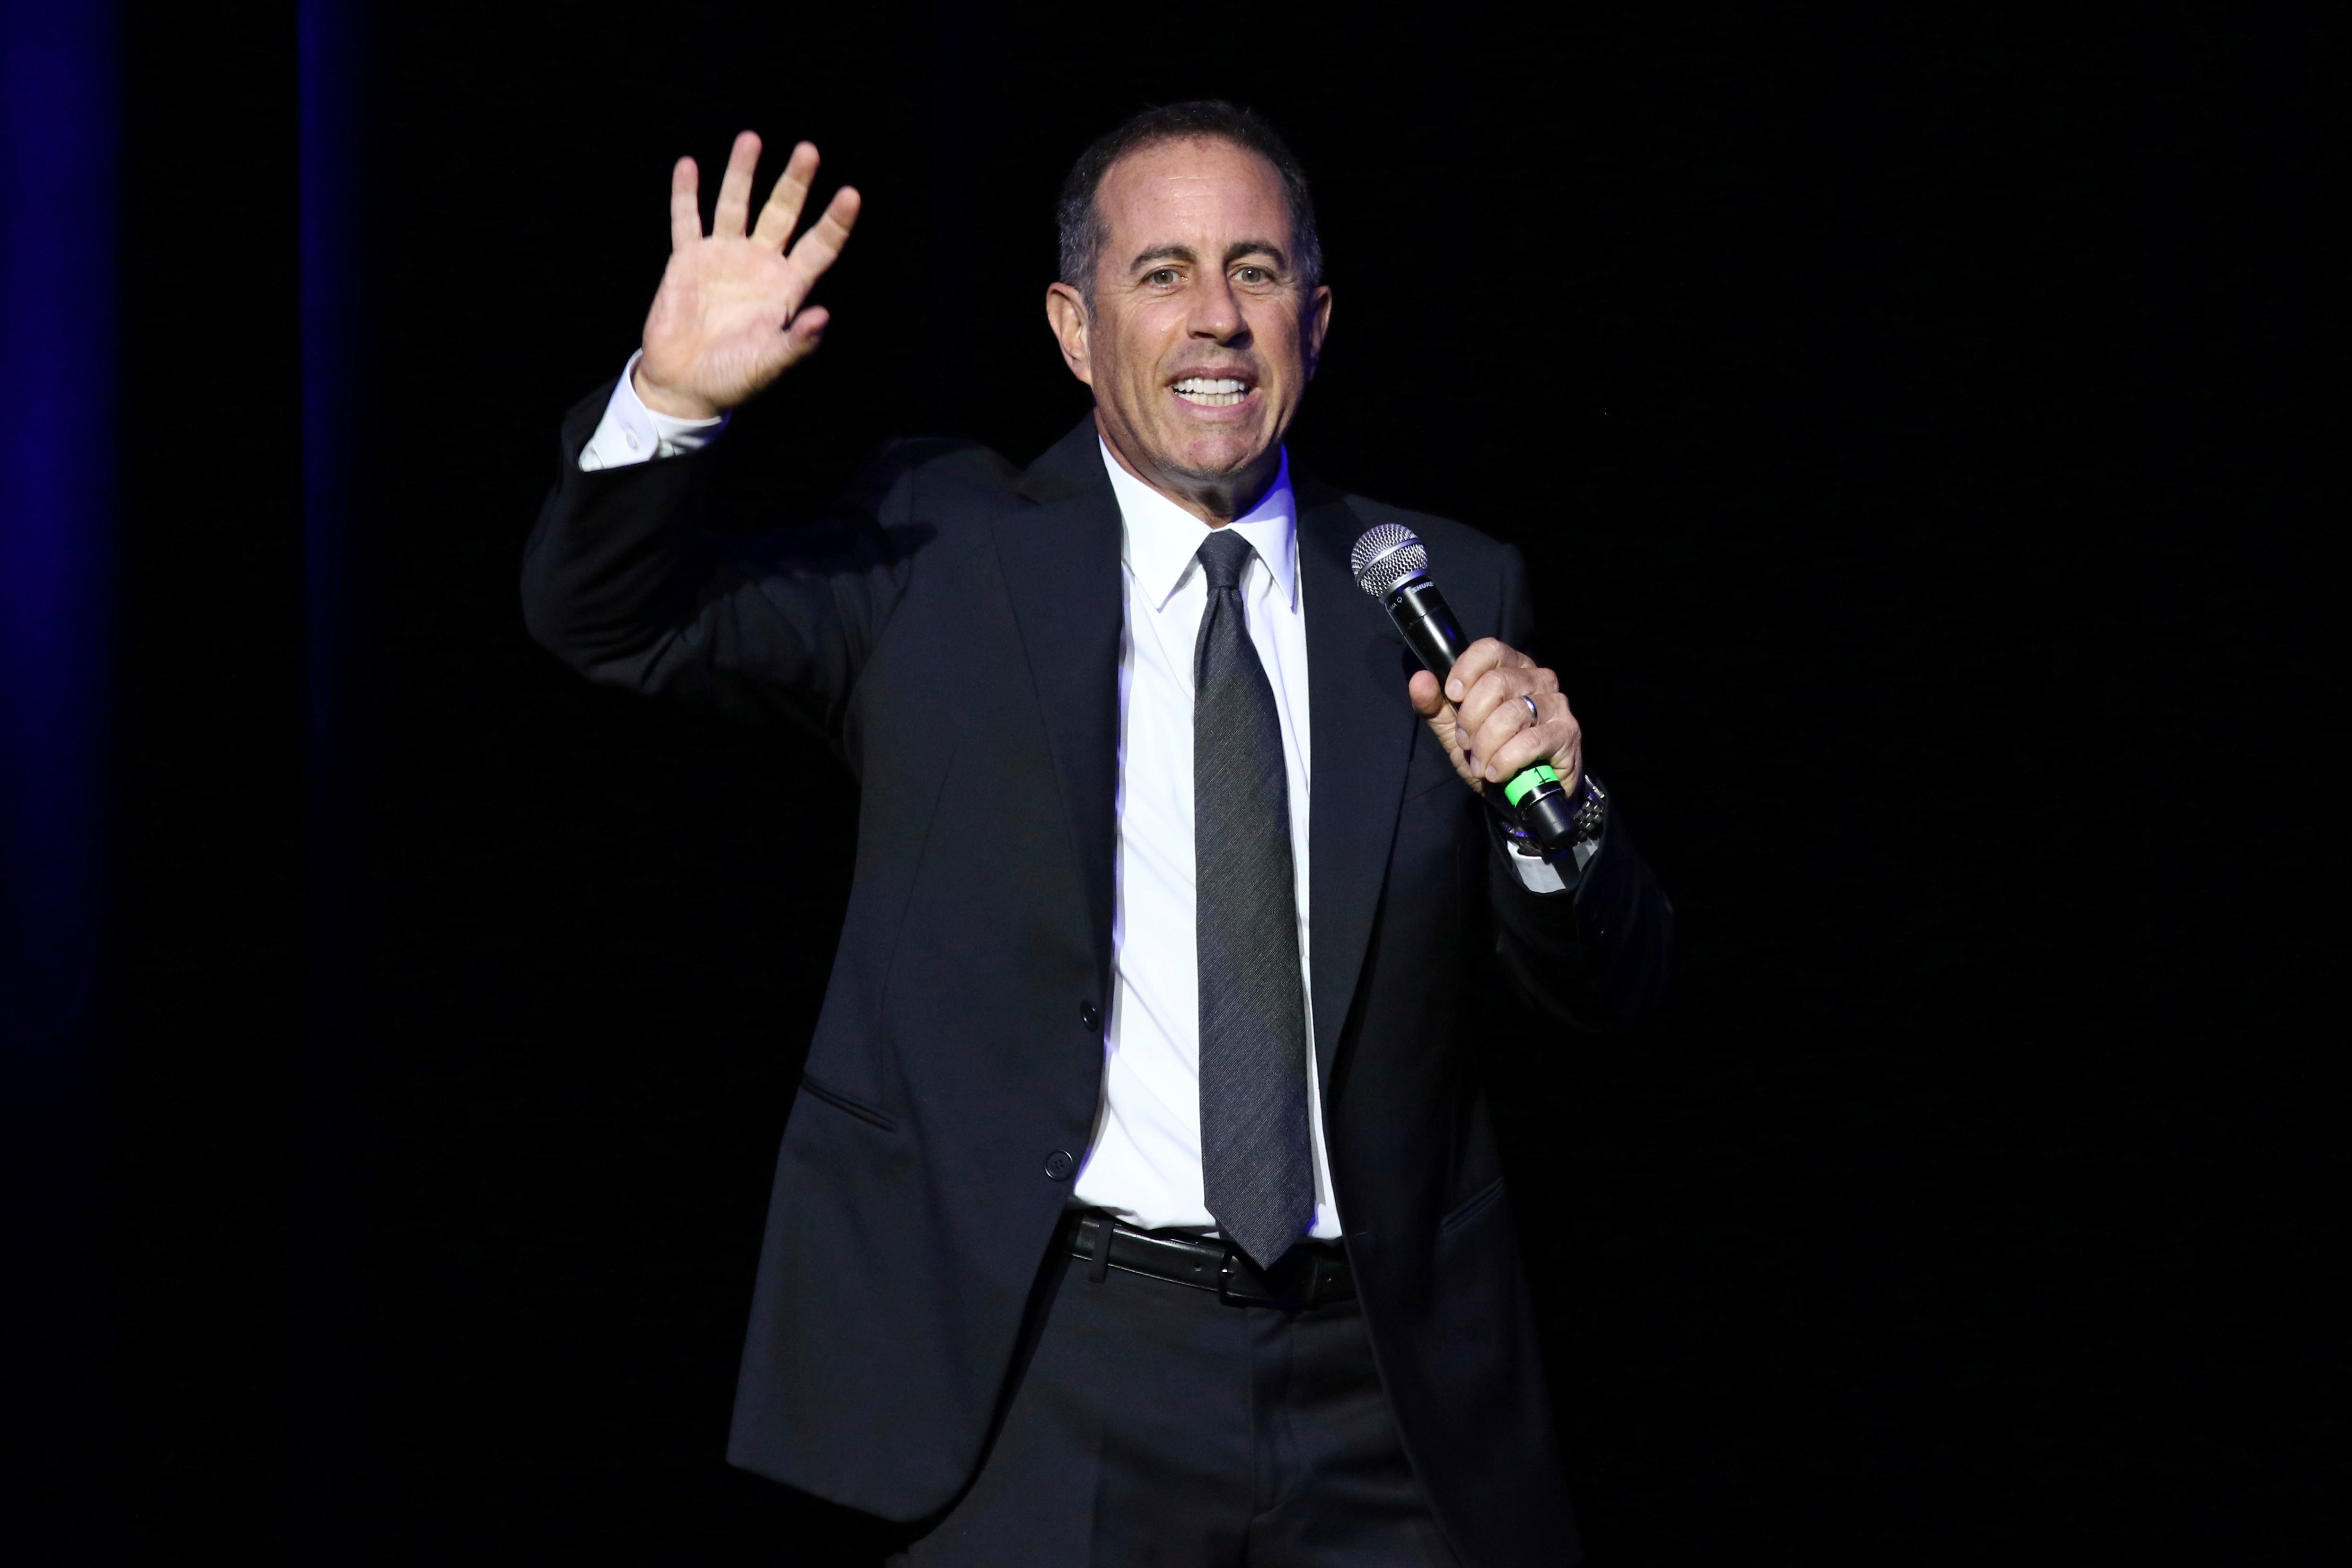 Jerry Seinfeld (Source: Associated Press: Nov. 1, 2016)